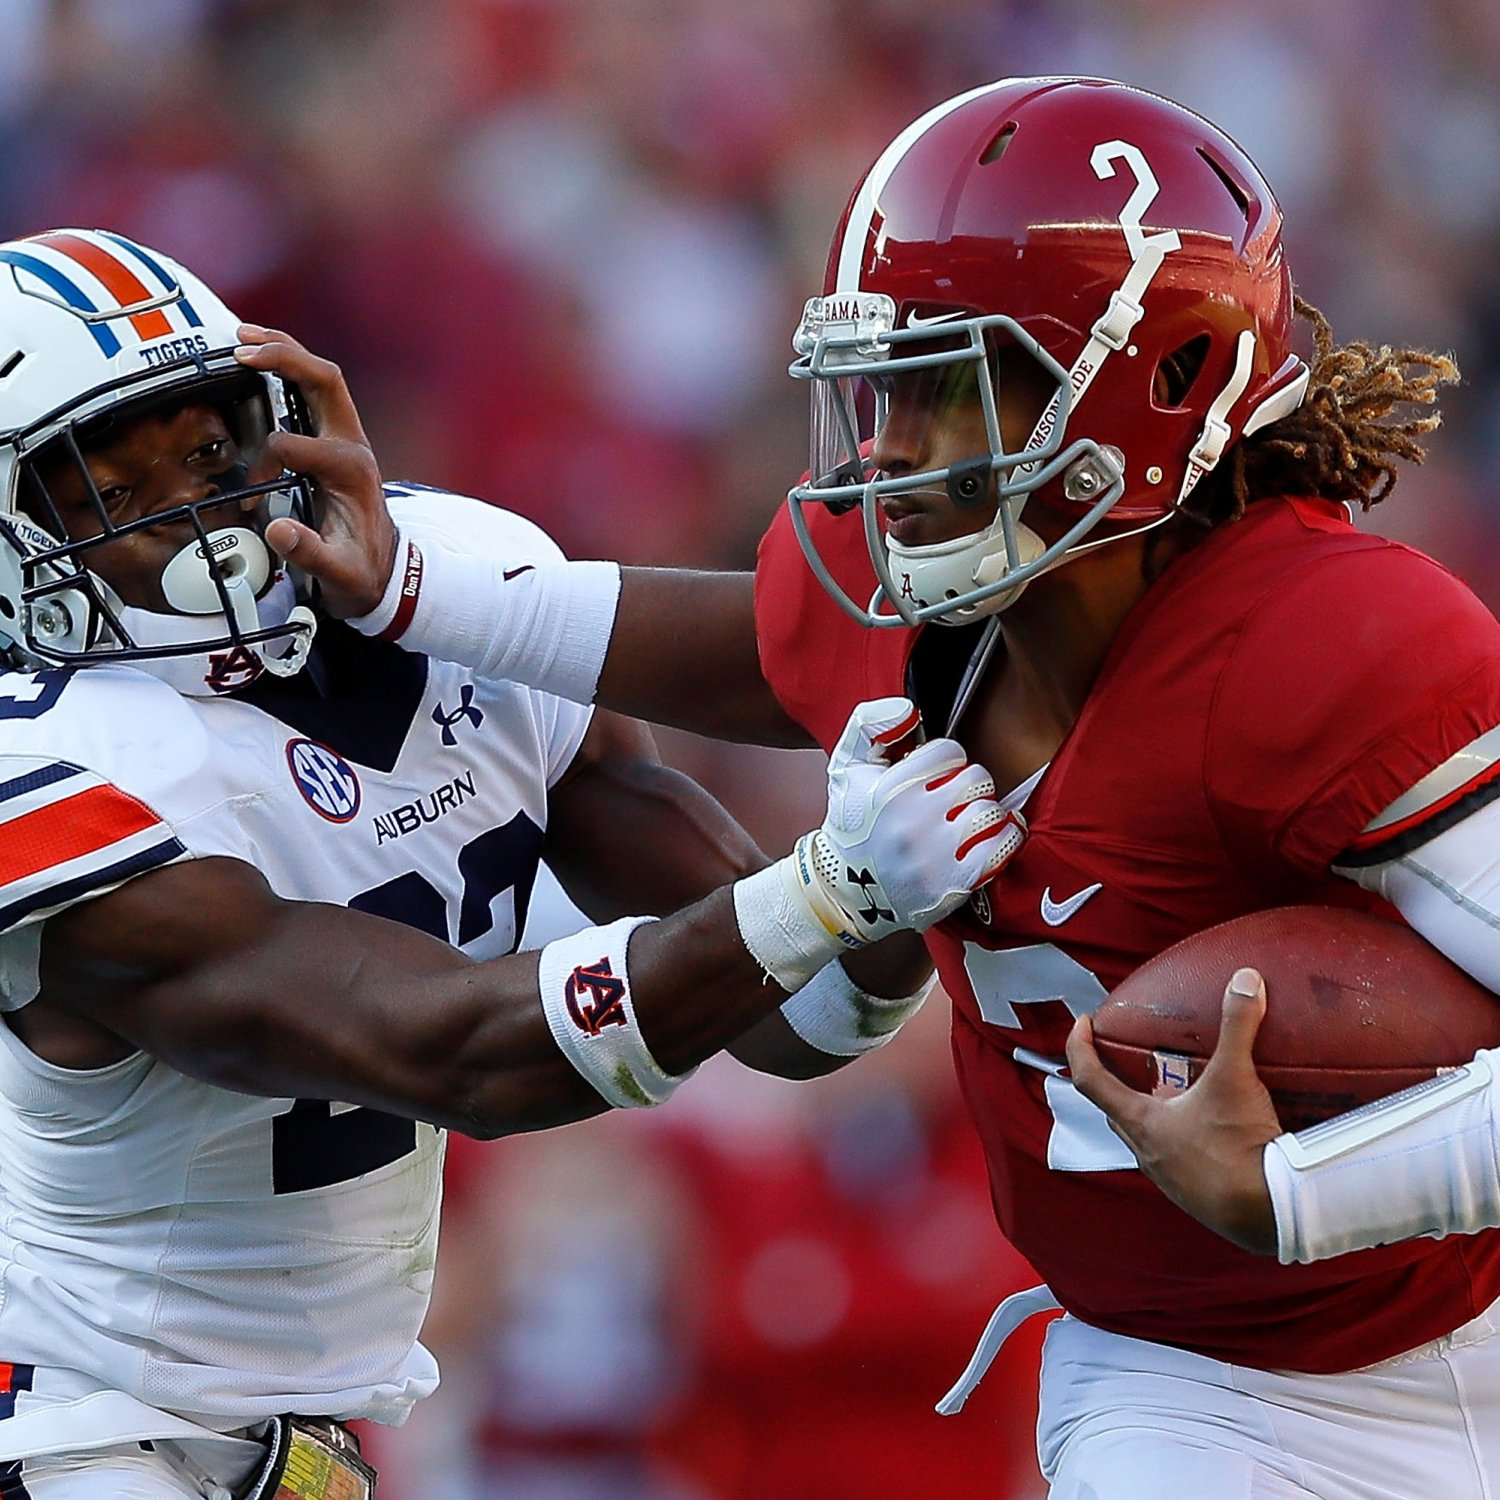 College Football Odds Week 14: Picks for Top 25 Matchups Based on Vegas Lines